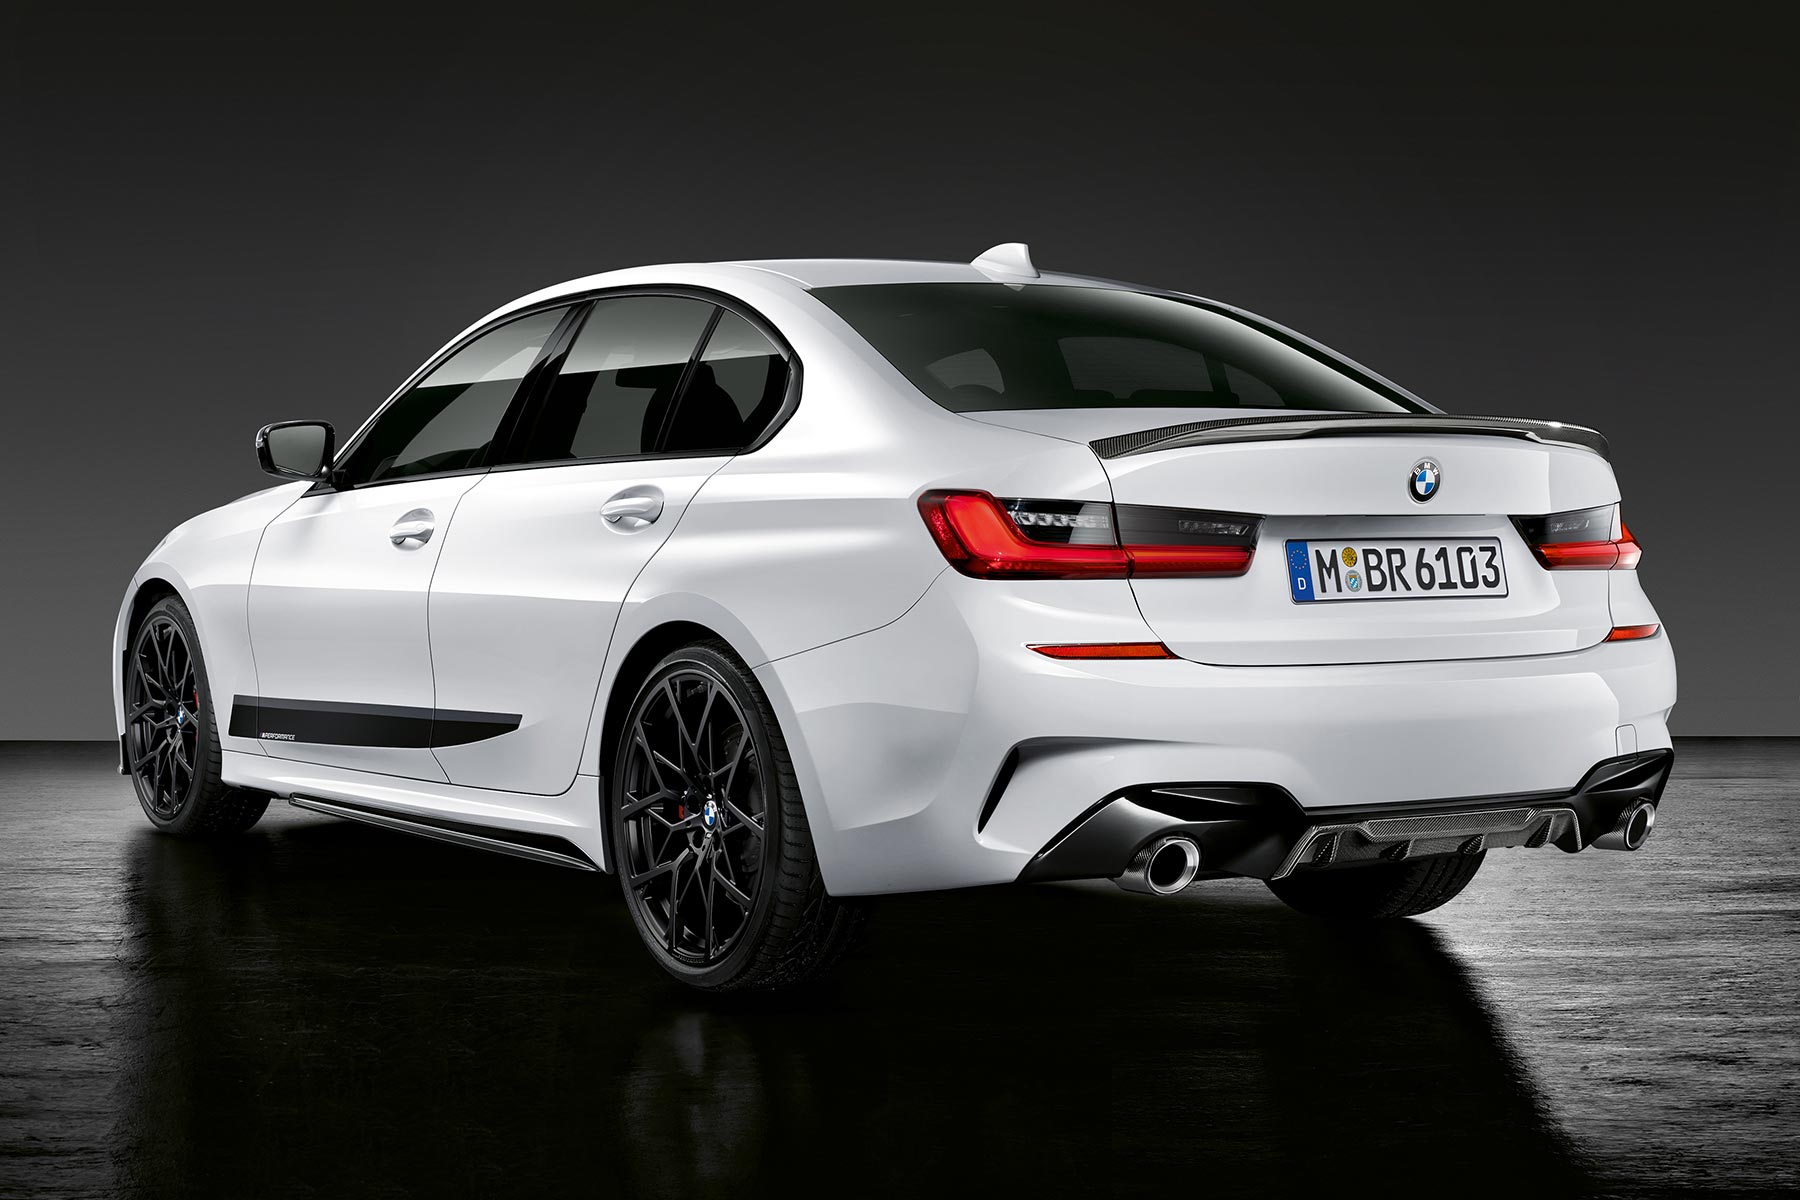 new 2019 bmw 3 series has m performance upgrades ready to go. Black Bedroom Furniture Sets. Home Design Ideas